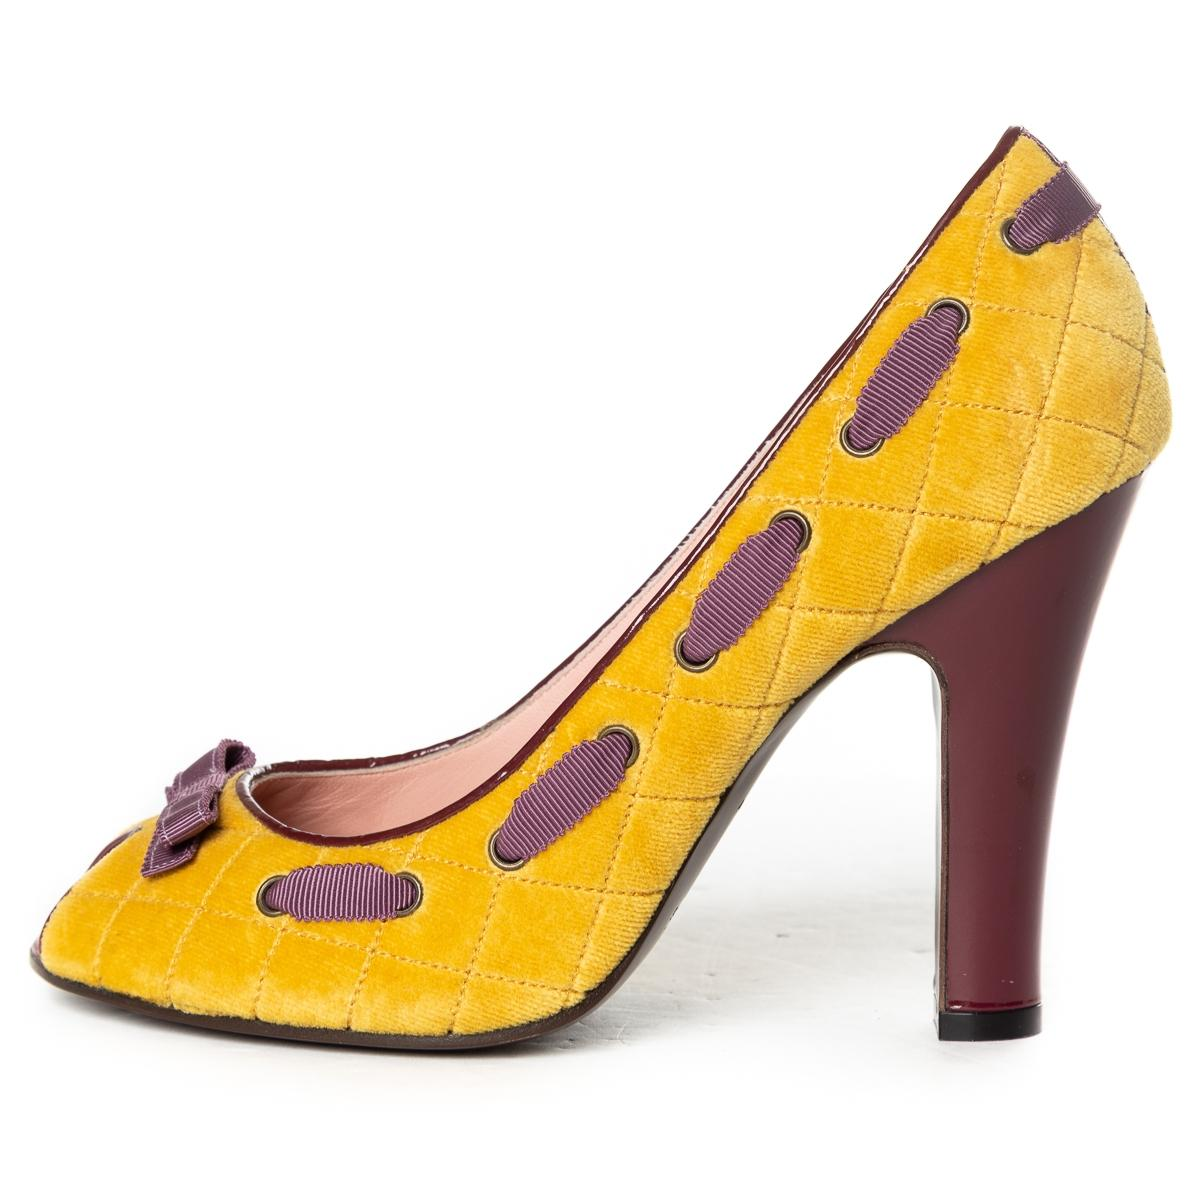 Marc Jacobs Mustard Quilted Velvet Peep-toe Pumps Size EU 38.5 (Approx. US 8.5) Regular (M, B)